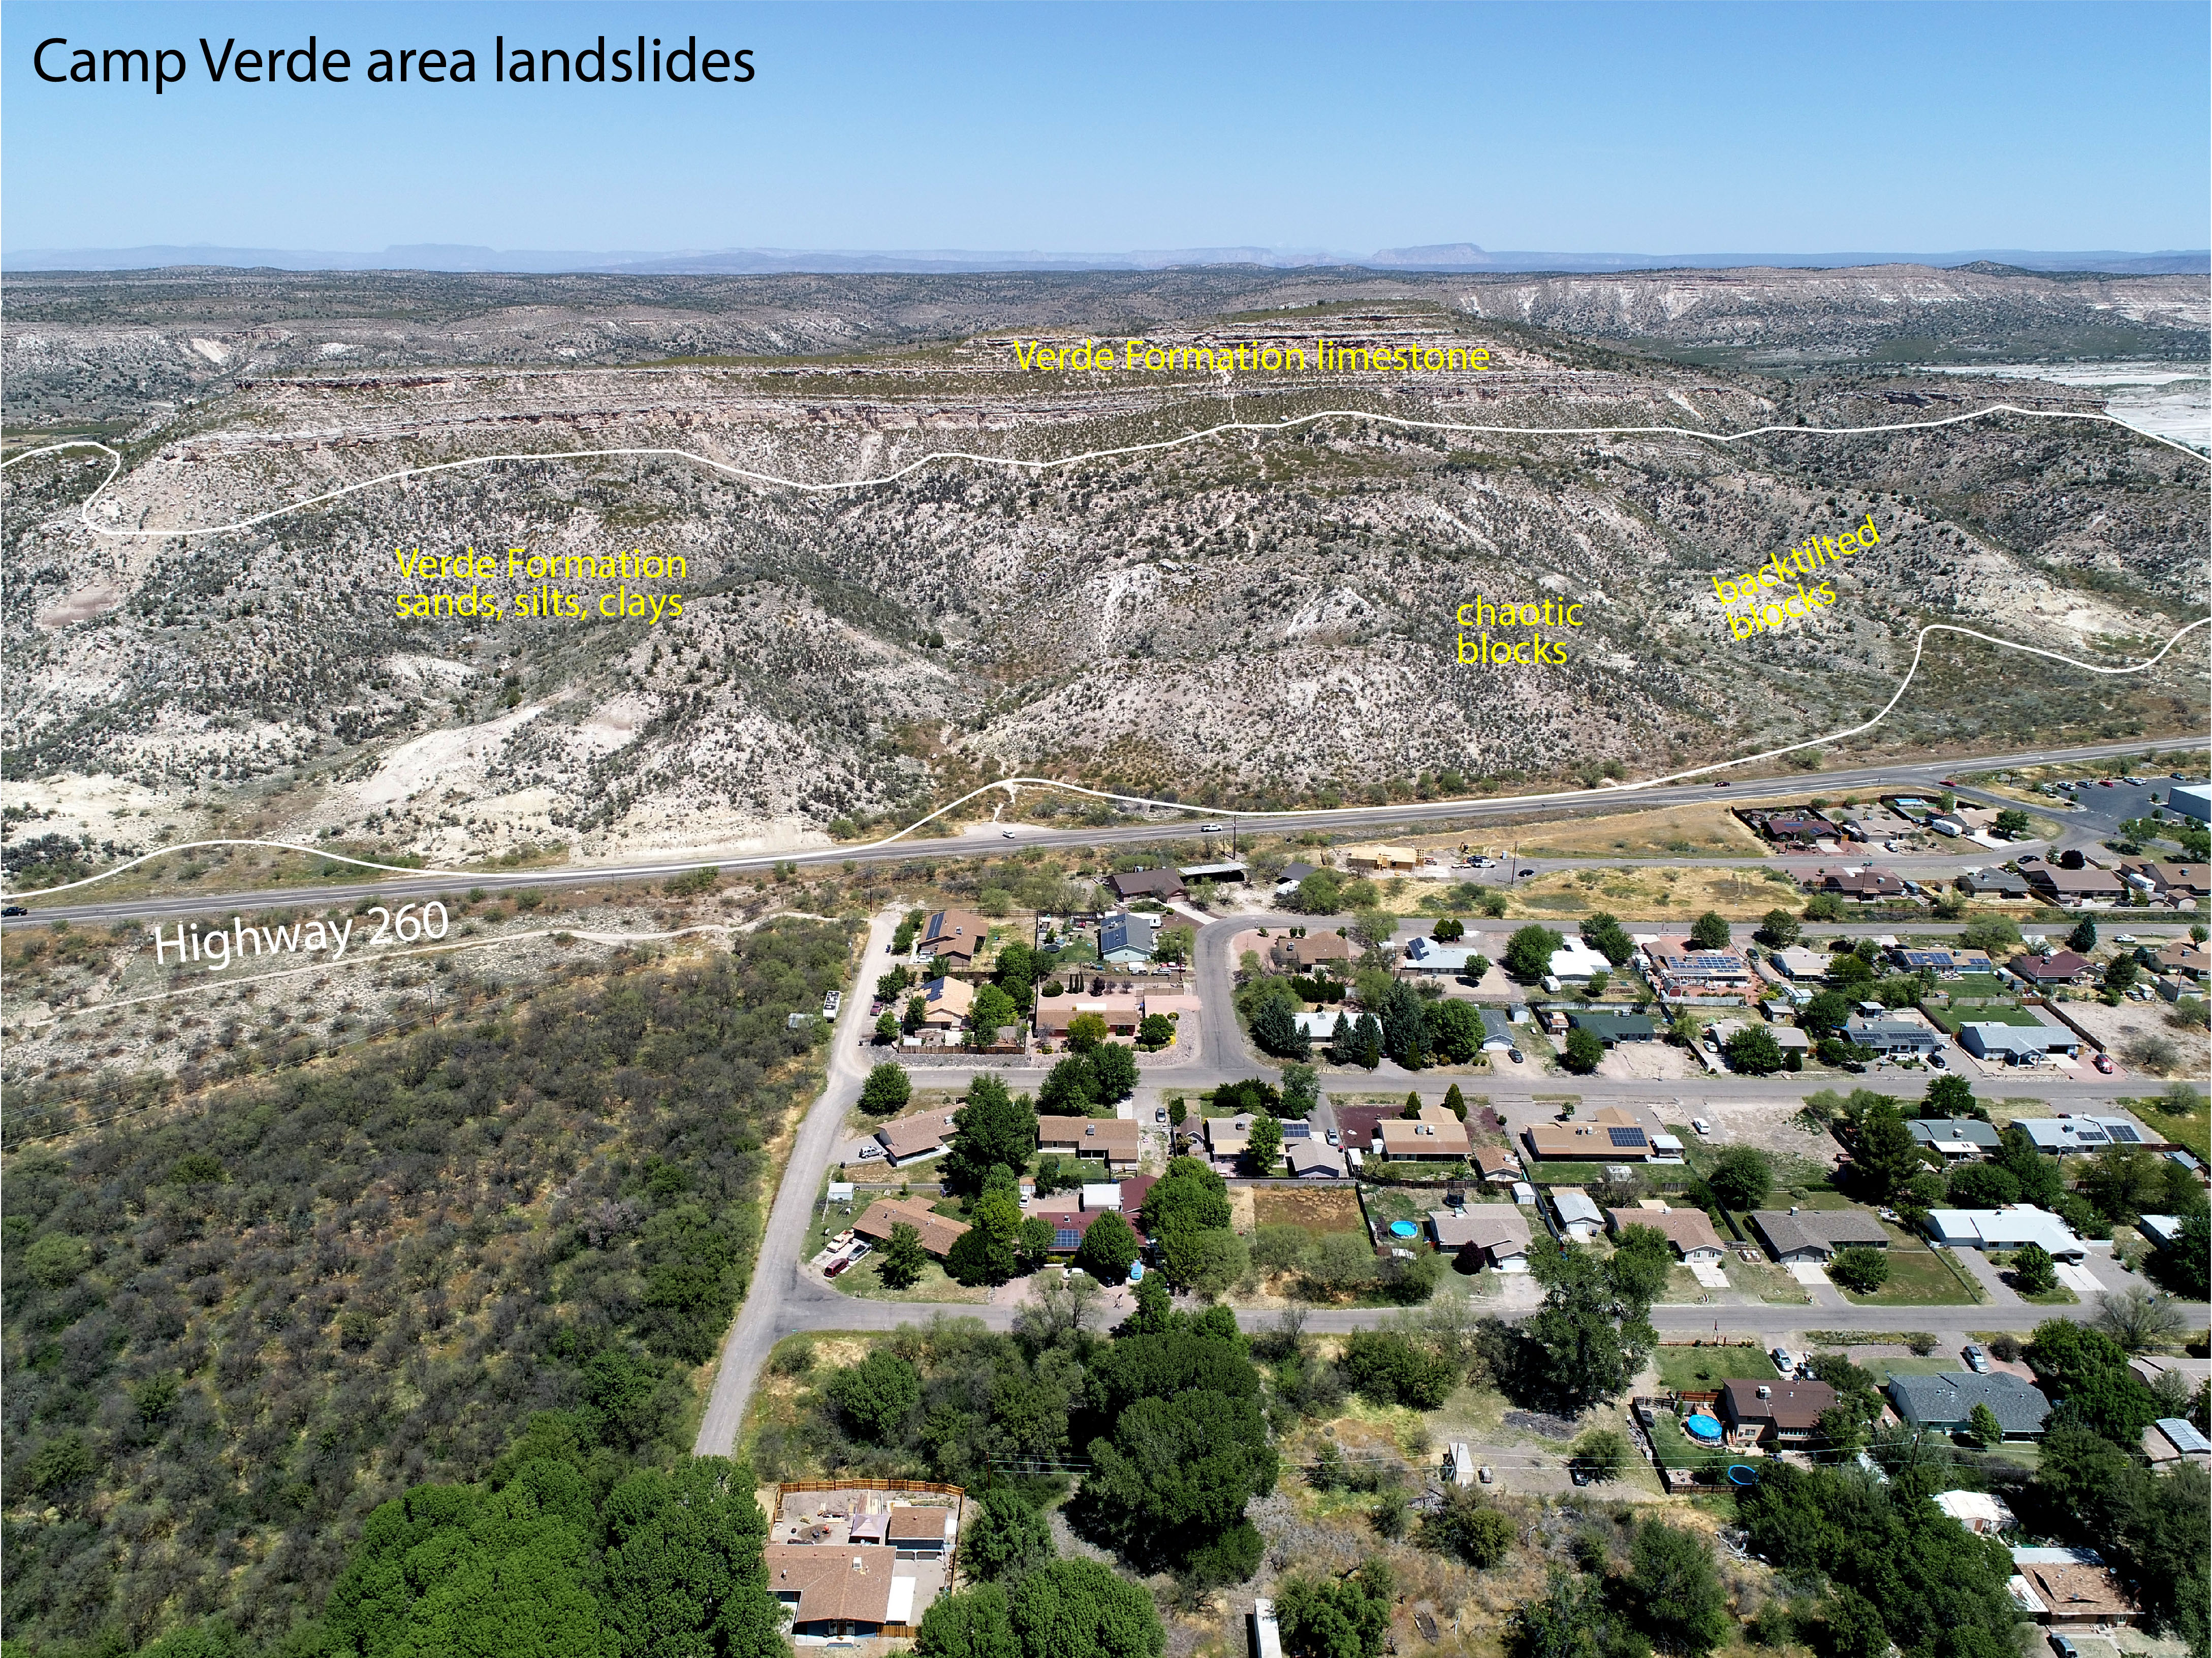 Landslides hosted in the Verde Formation along axis of Verde Valley.